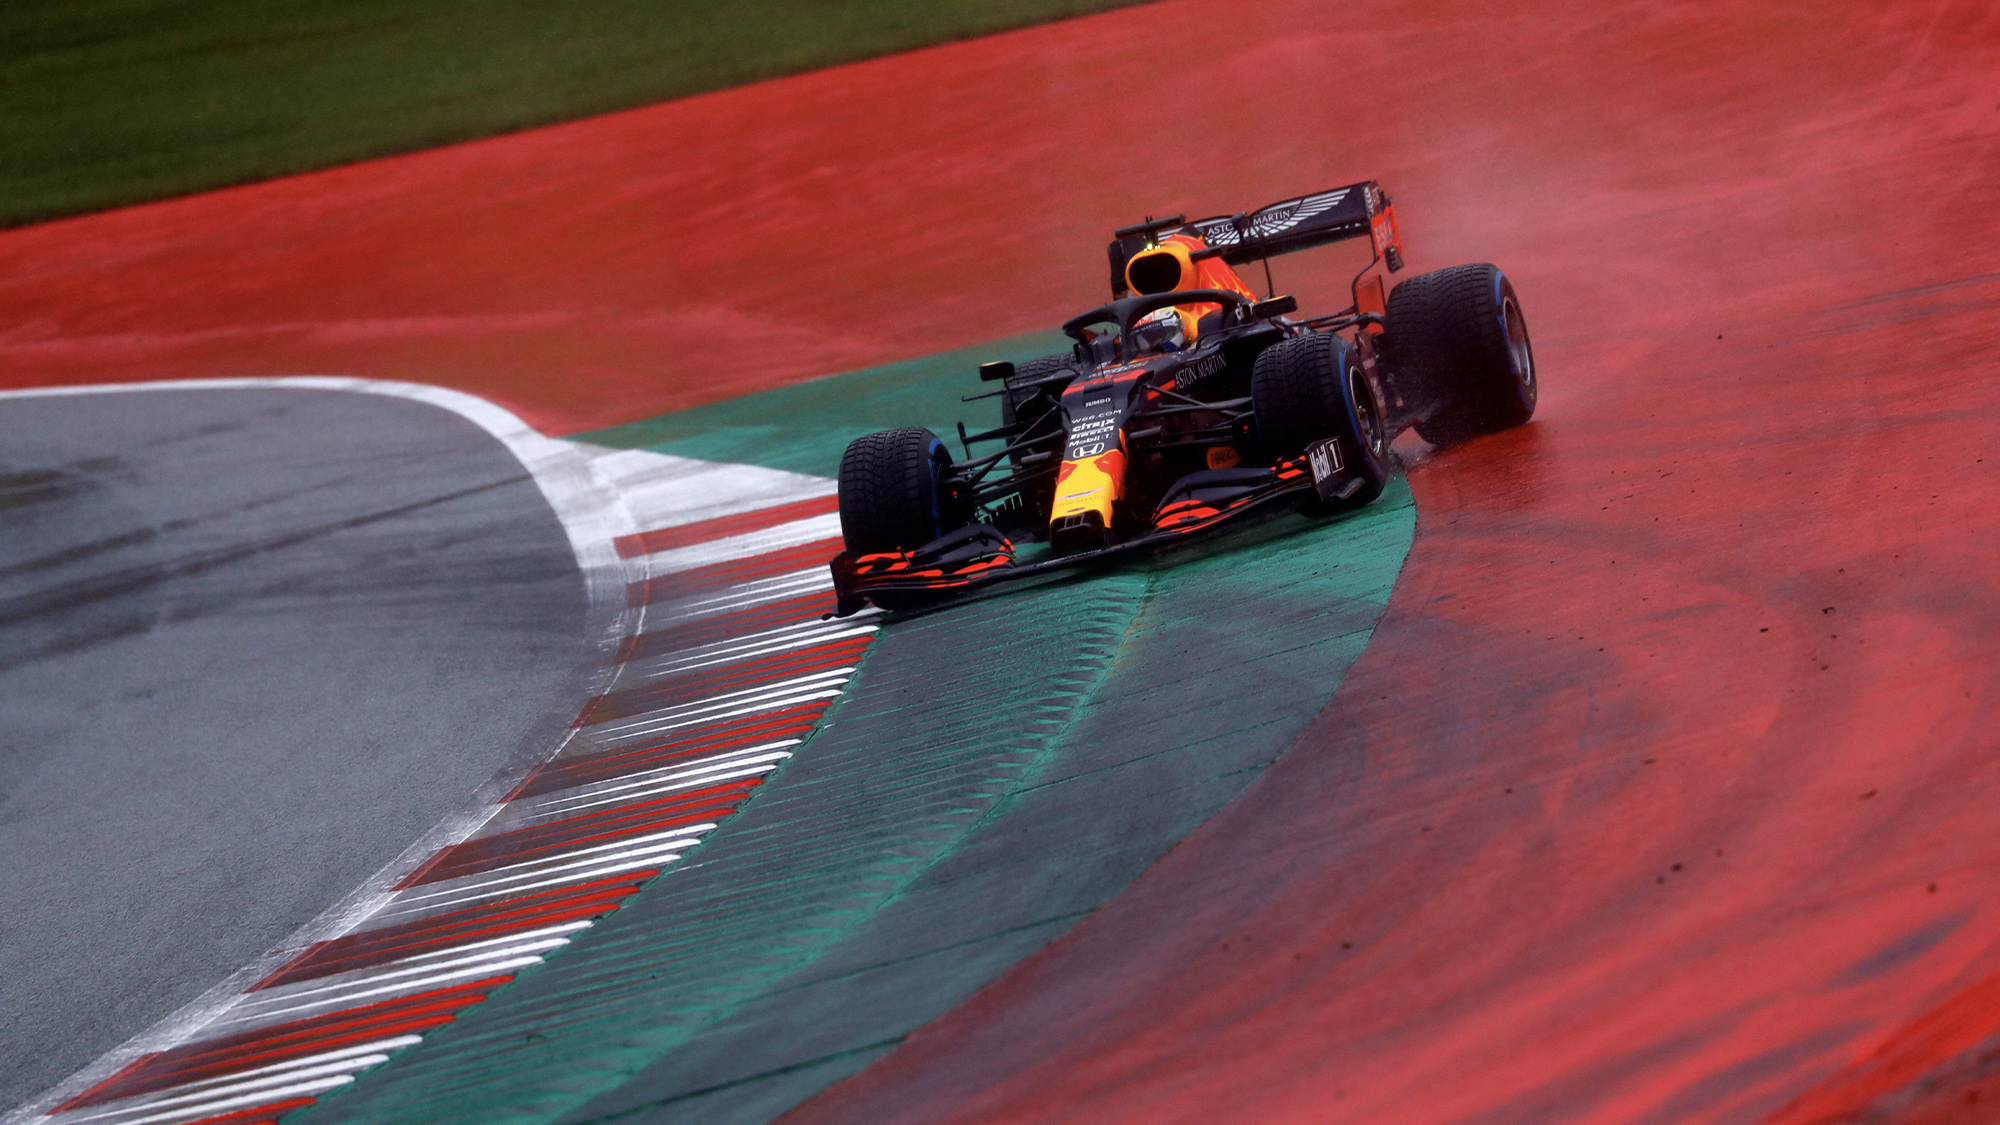 Max Verstappen goes off during qualifying for the 2020 F1 Styrian Grand Prix at the red Bull ring